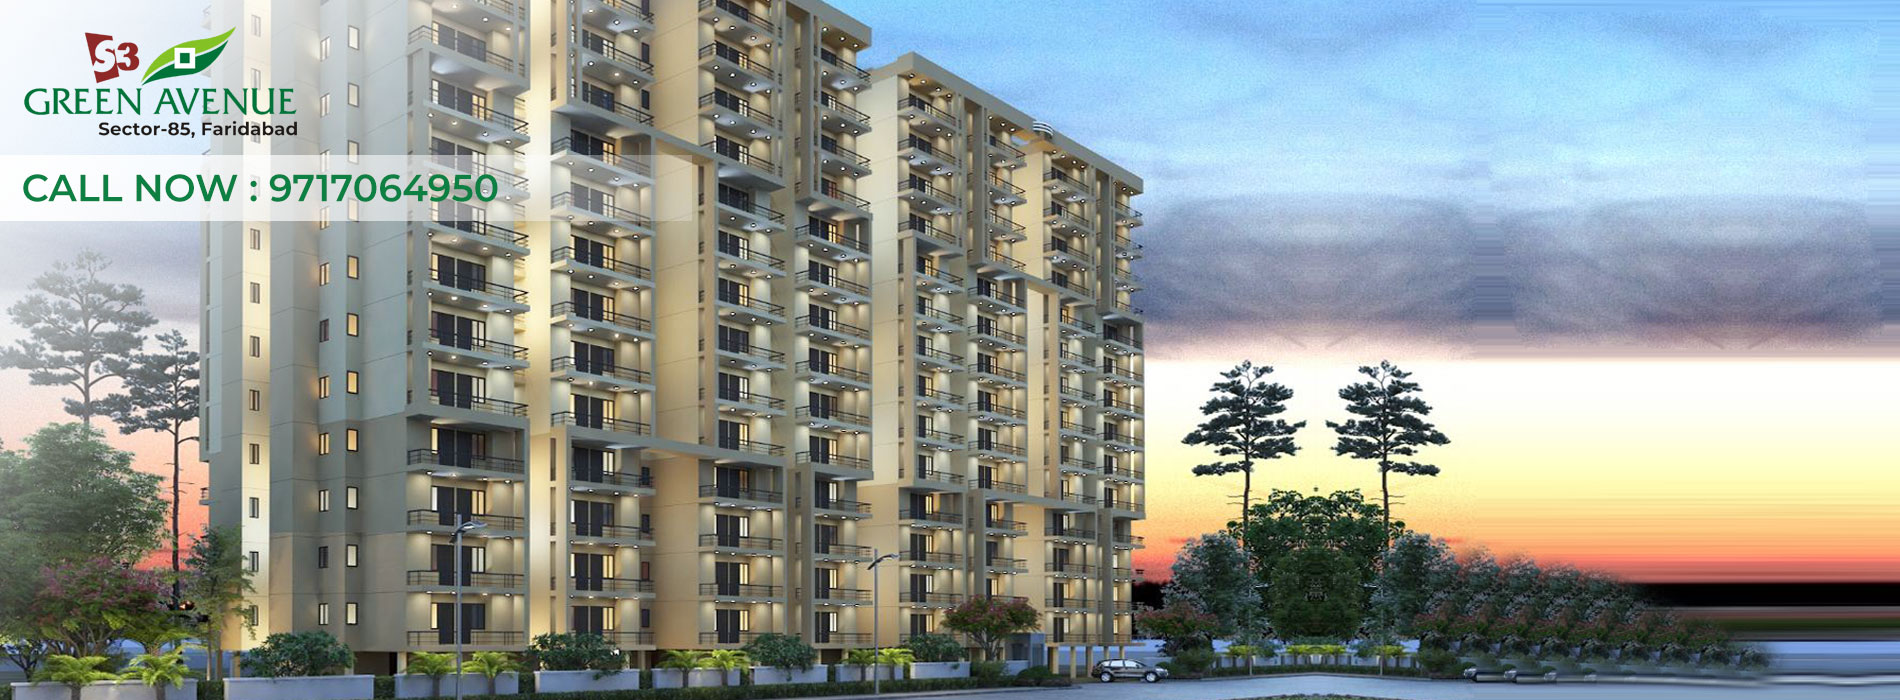 Green Avenue residences sec 85 faridabad